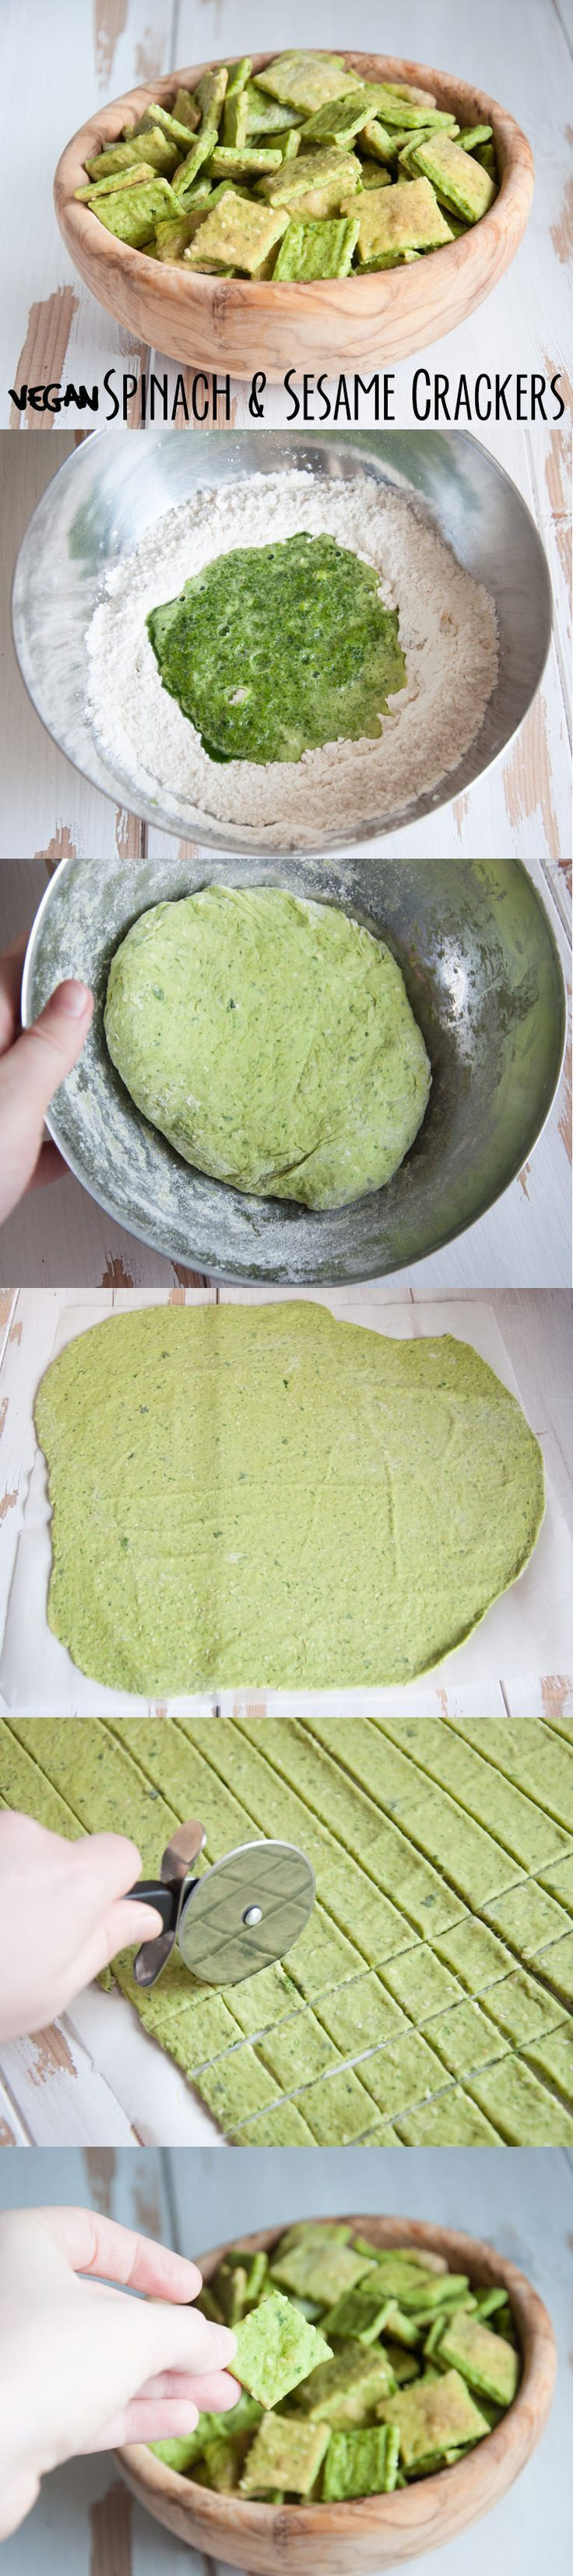 #vegan Spinach & Sesame Crackers from ElephantasticVegan.com, I had to triple the spinach step to get it to blend so I figured it was just under 3/4 c of the spinach liquid for this recipe. You can freeze the rest for a future time or put it in a smoothie. Use less salt.